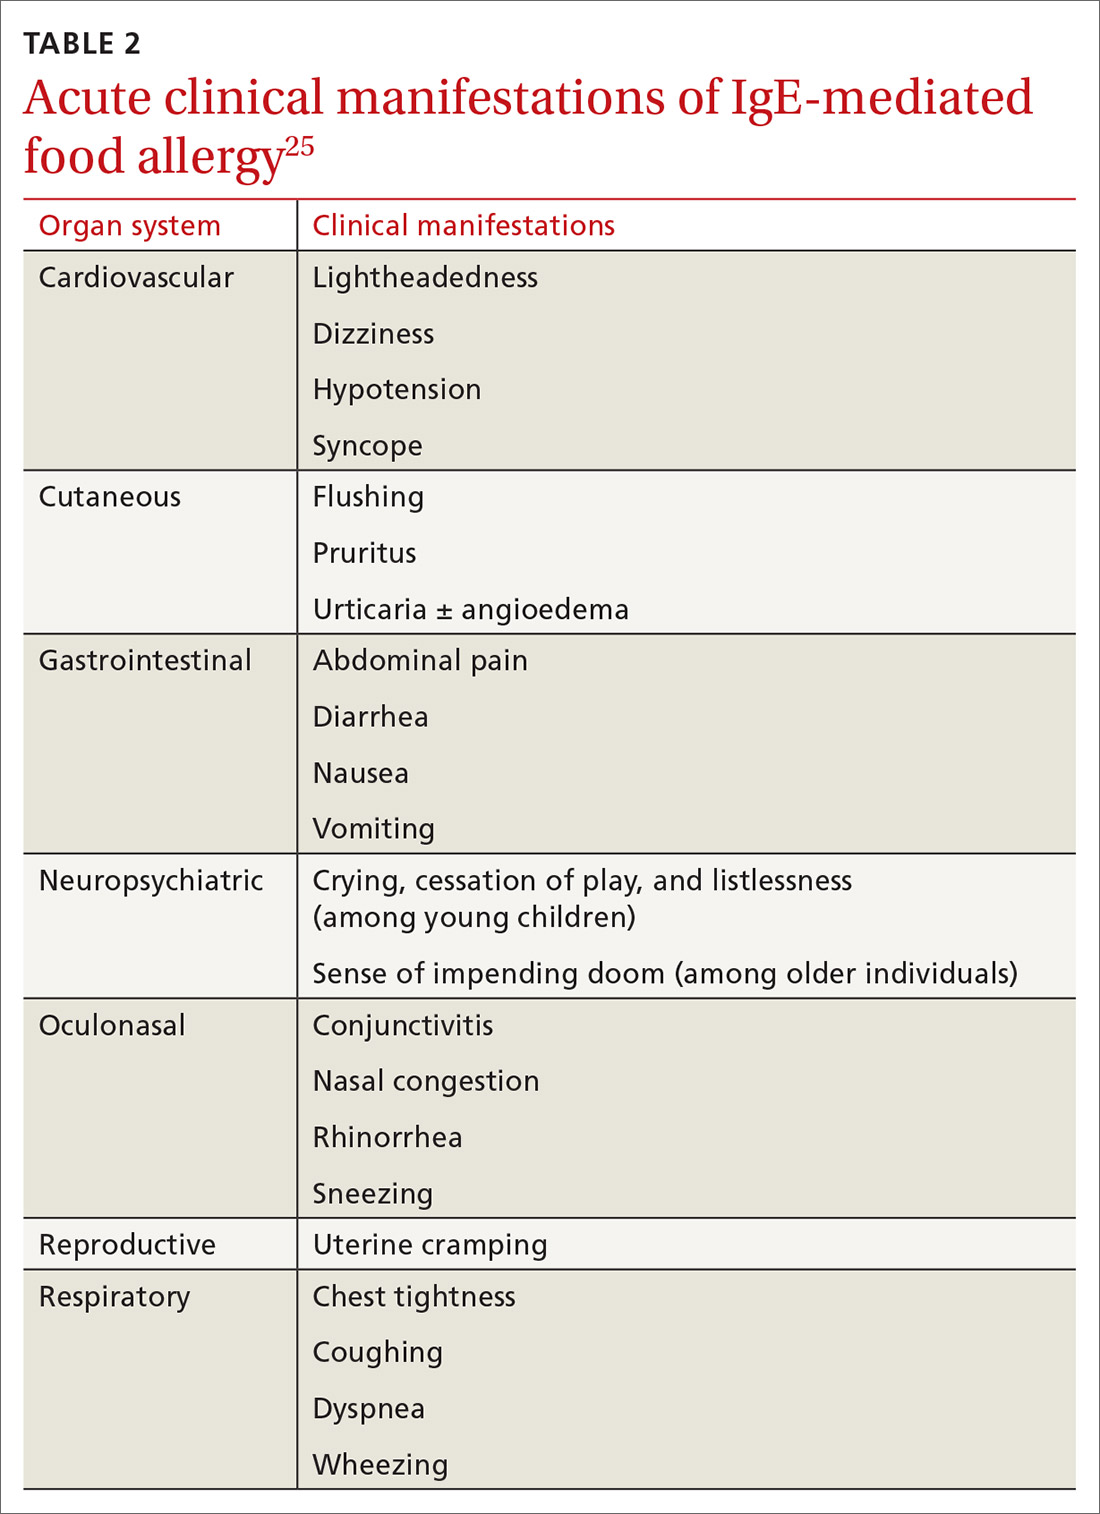 Acute clinical manifestations of IgE-mediated food allergy